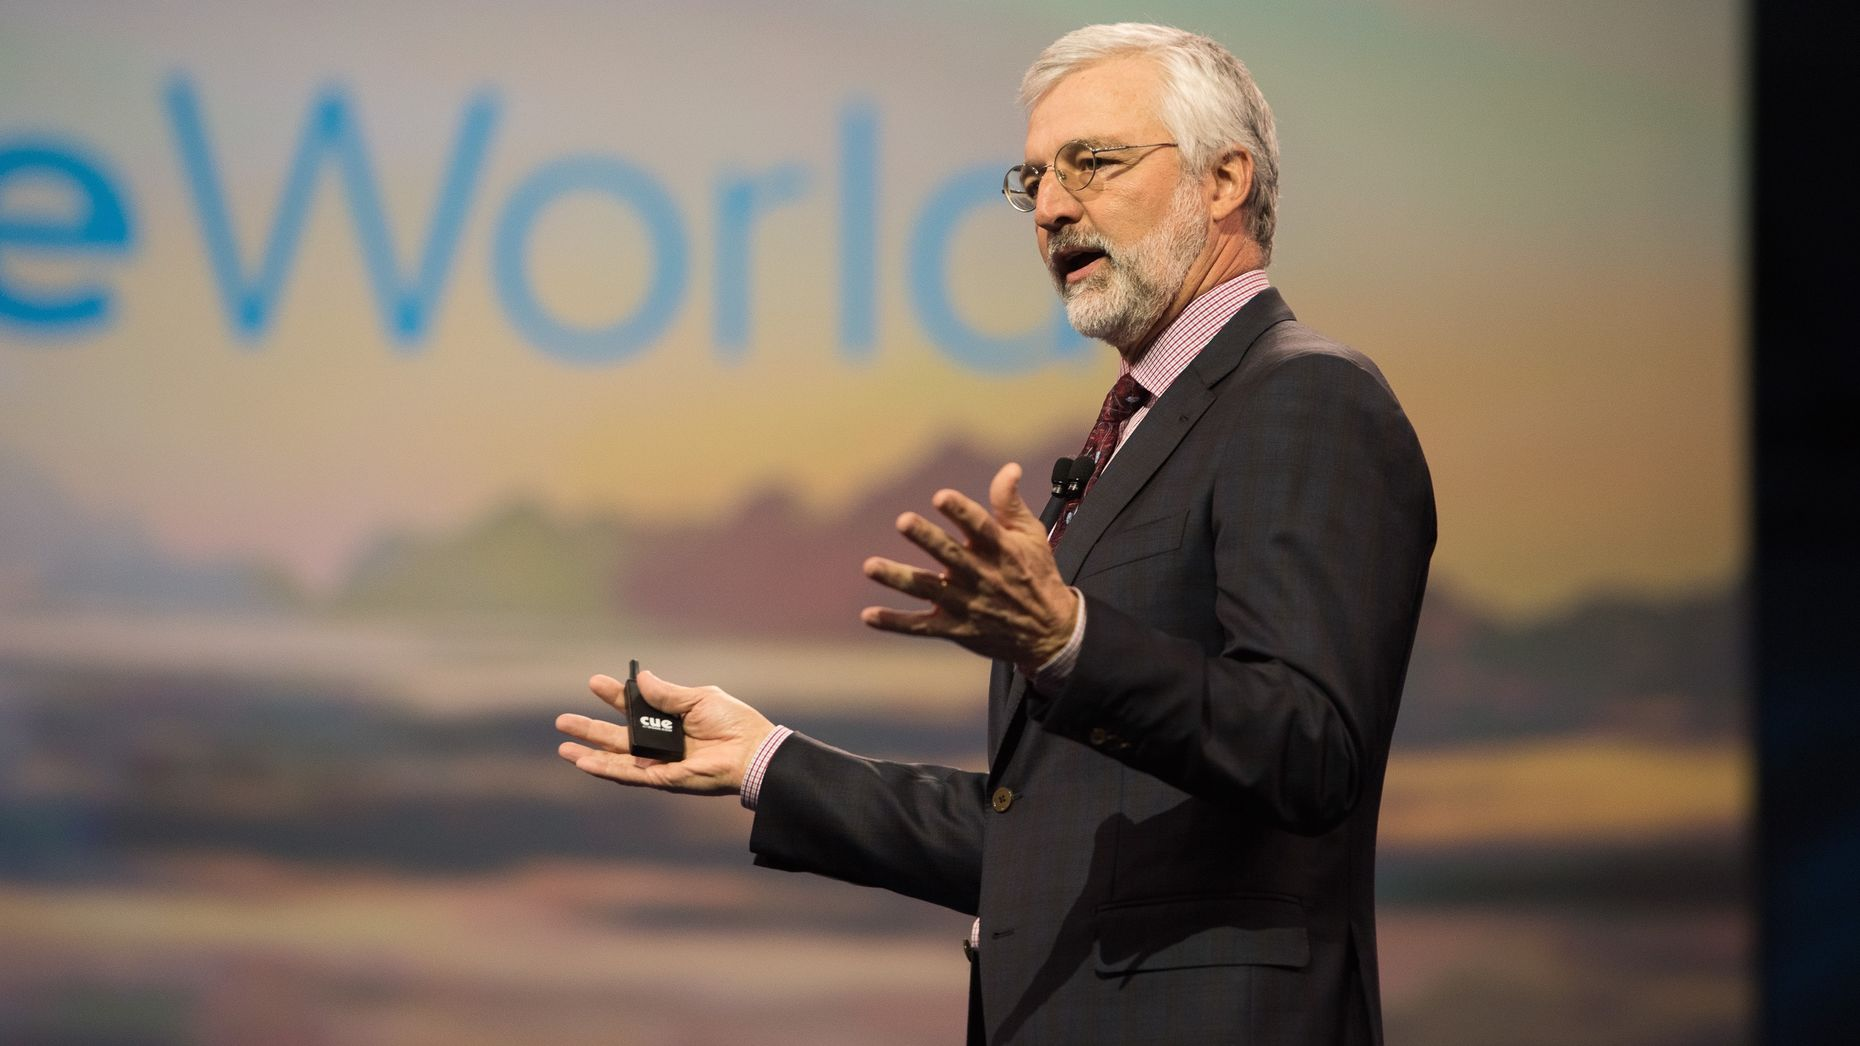 NetSuite CEO Zach Nelson. Photo by NetSuite.